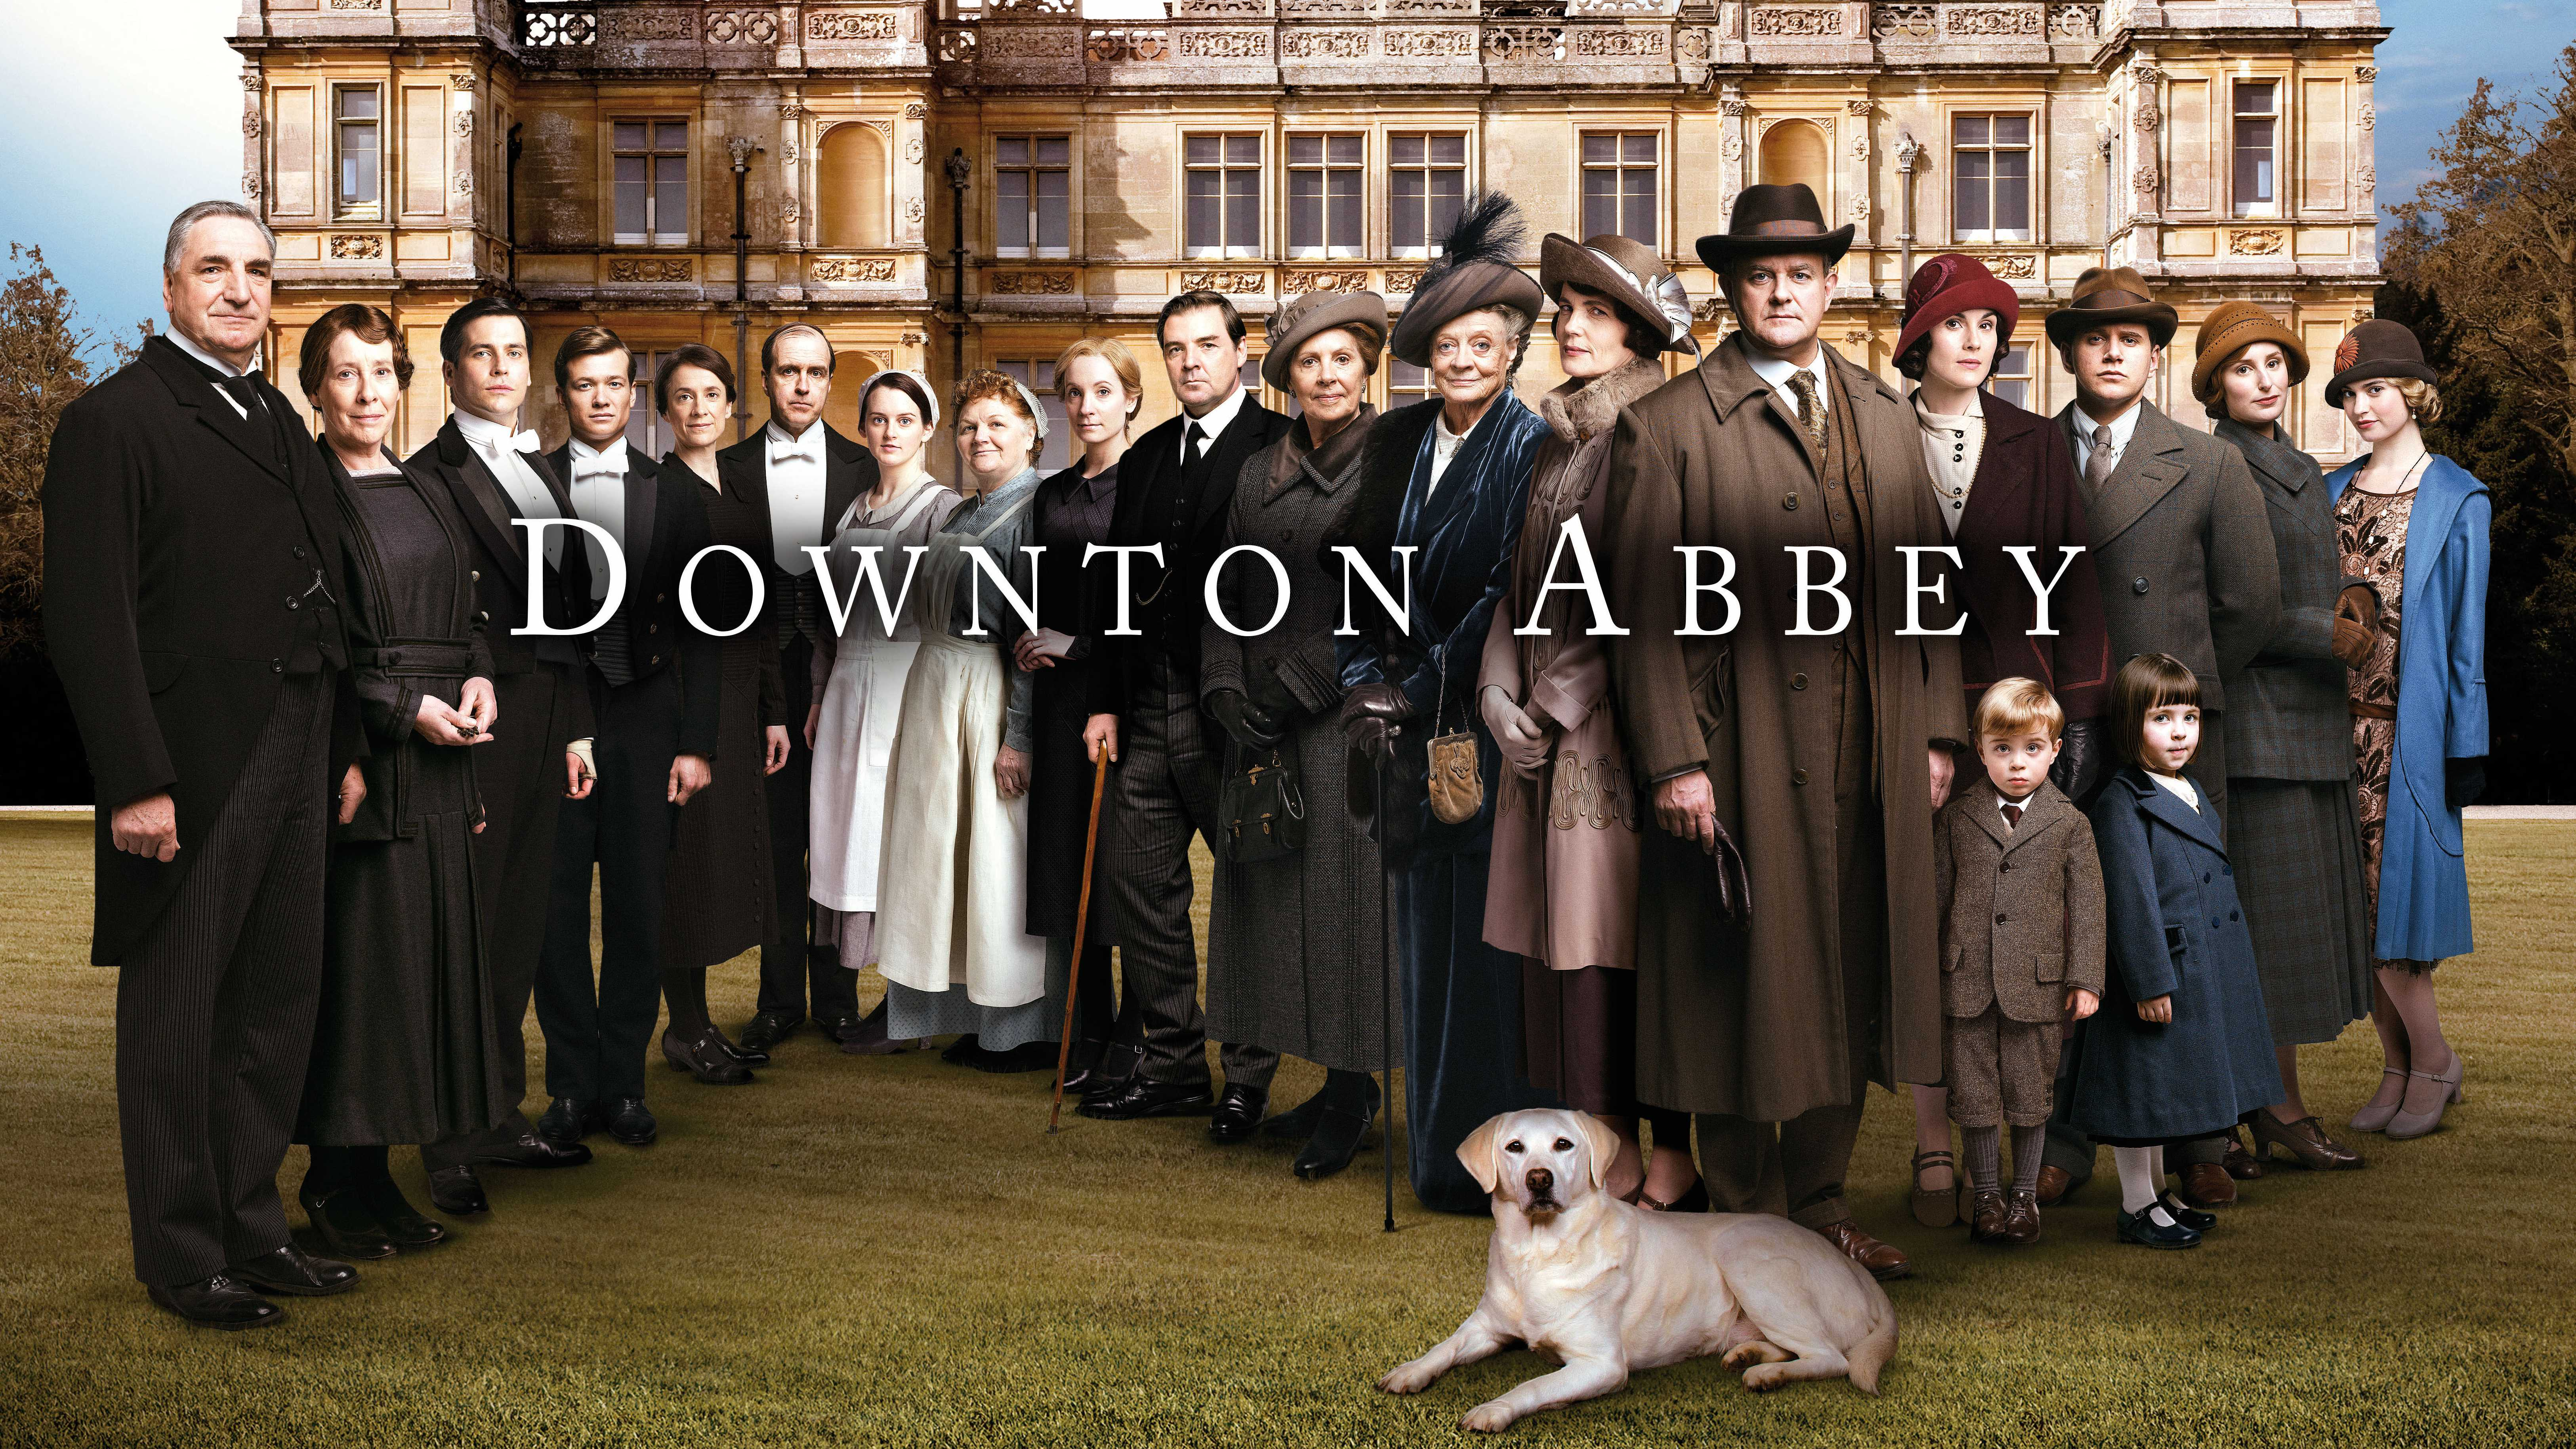 Downton Abbey Season 5 Premieres Sunday, January 4th, 2015 on MASTERPIECE on PBS (C) Nick Briggs/Carnival Films 2014 for MASTERPIECE This image may be used only in the direct promotion of MASTERPIECE CLASSIC. No other rights are granted. All rights are reserved. Editorial use only. USE ON THIRD PARTY SITES SUCH AS FACEBOOK AND TWITTER IS NOT ALLOWED.